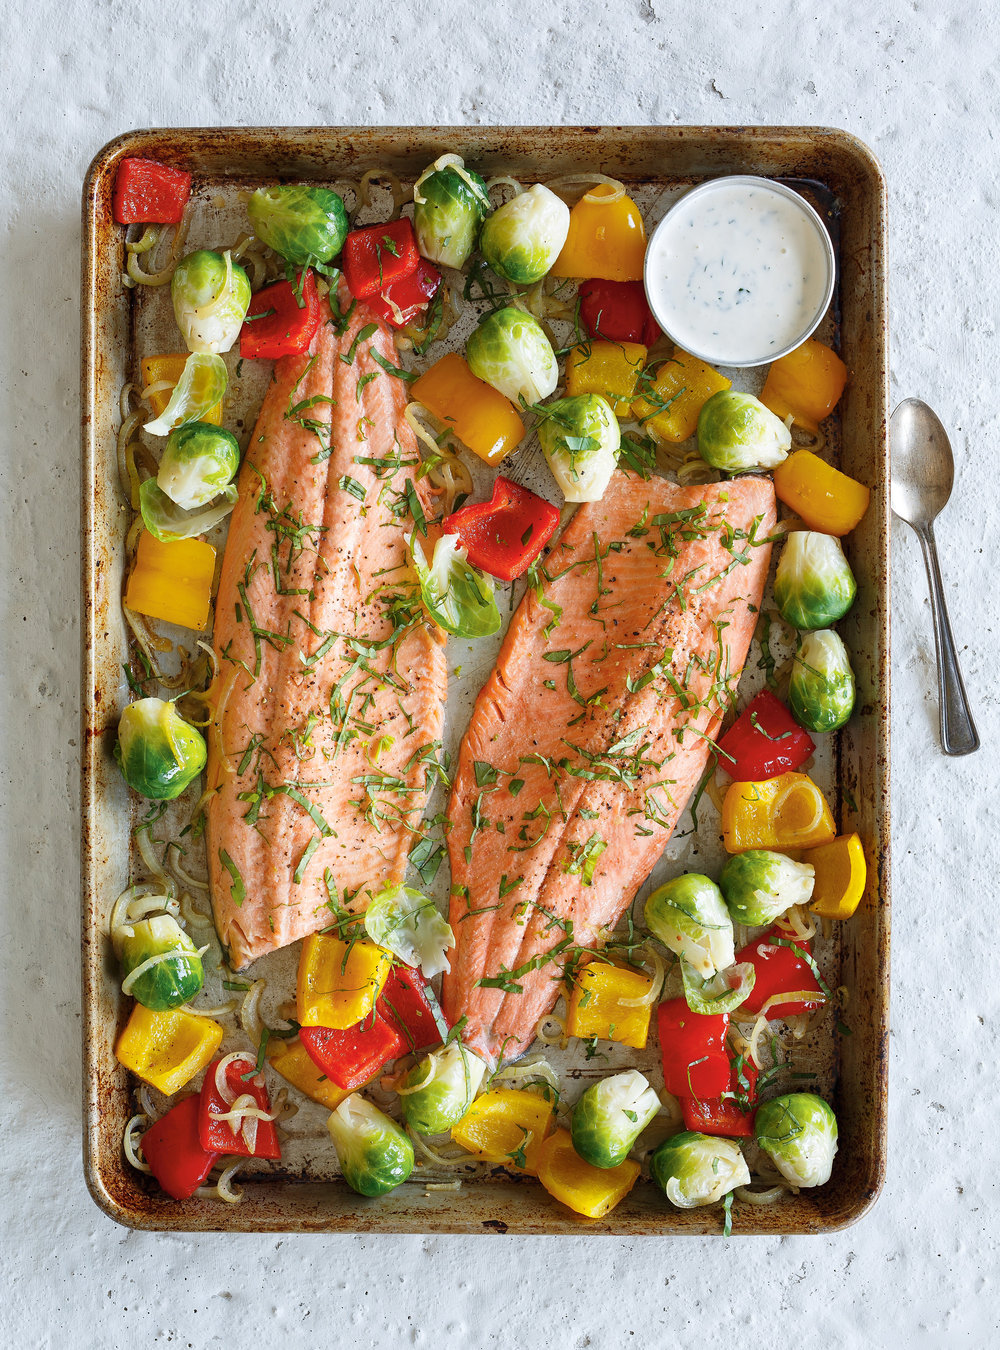 Baked Trout with Roasted Vegetables | Ricardo